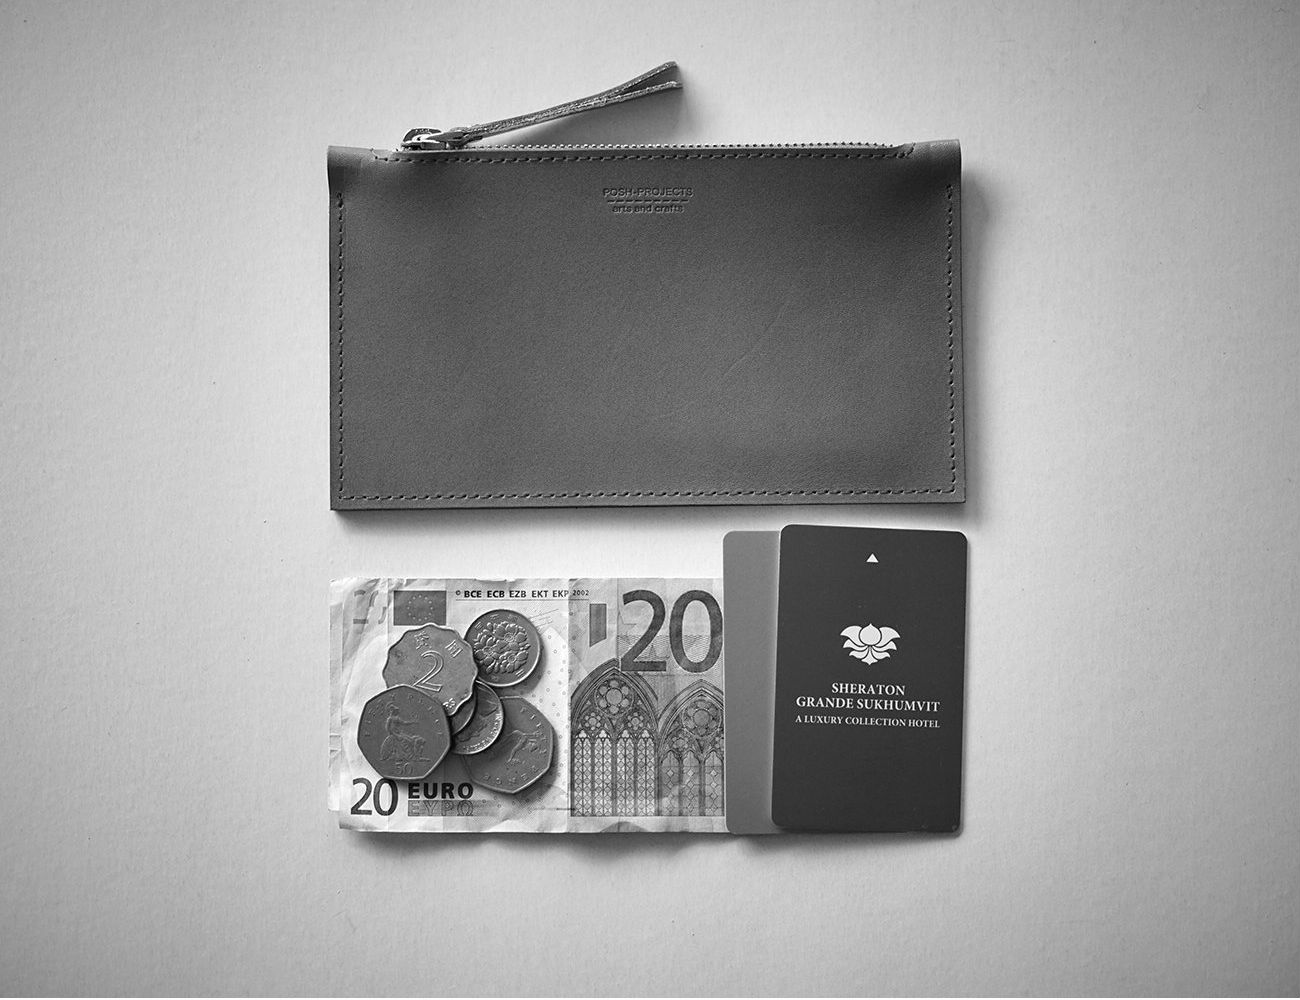 405 Zip Wallet by Posh-Projects